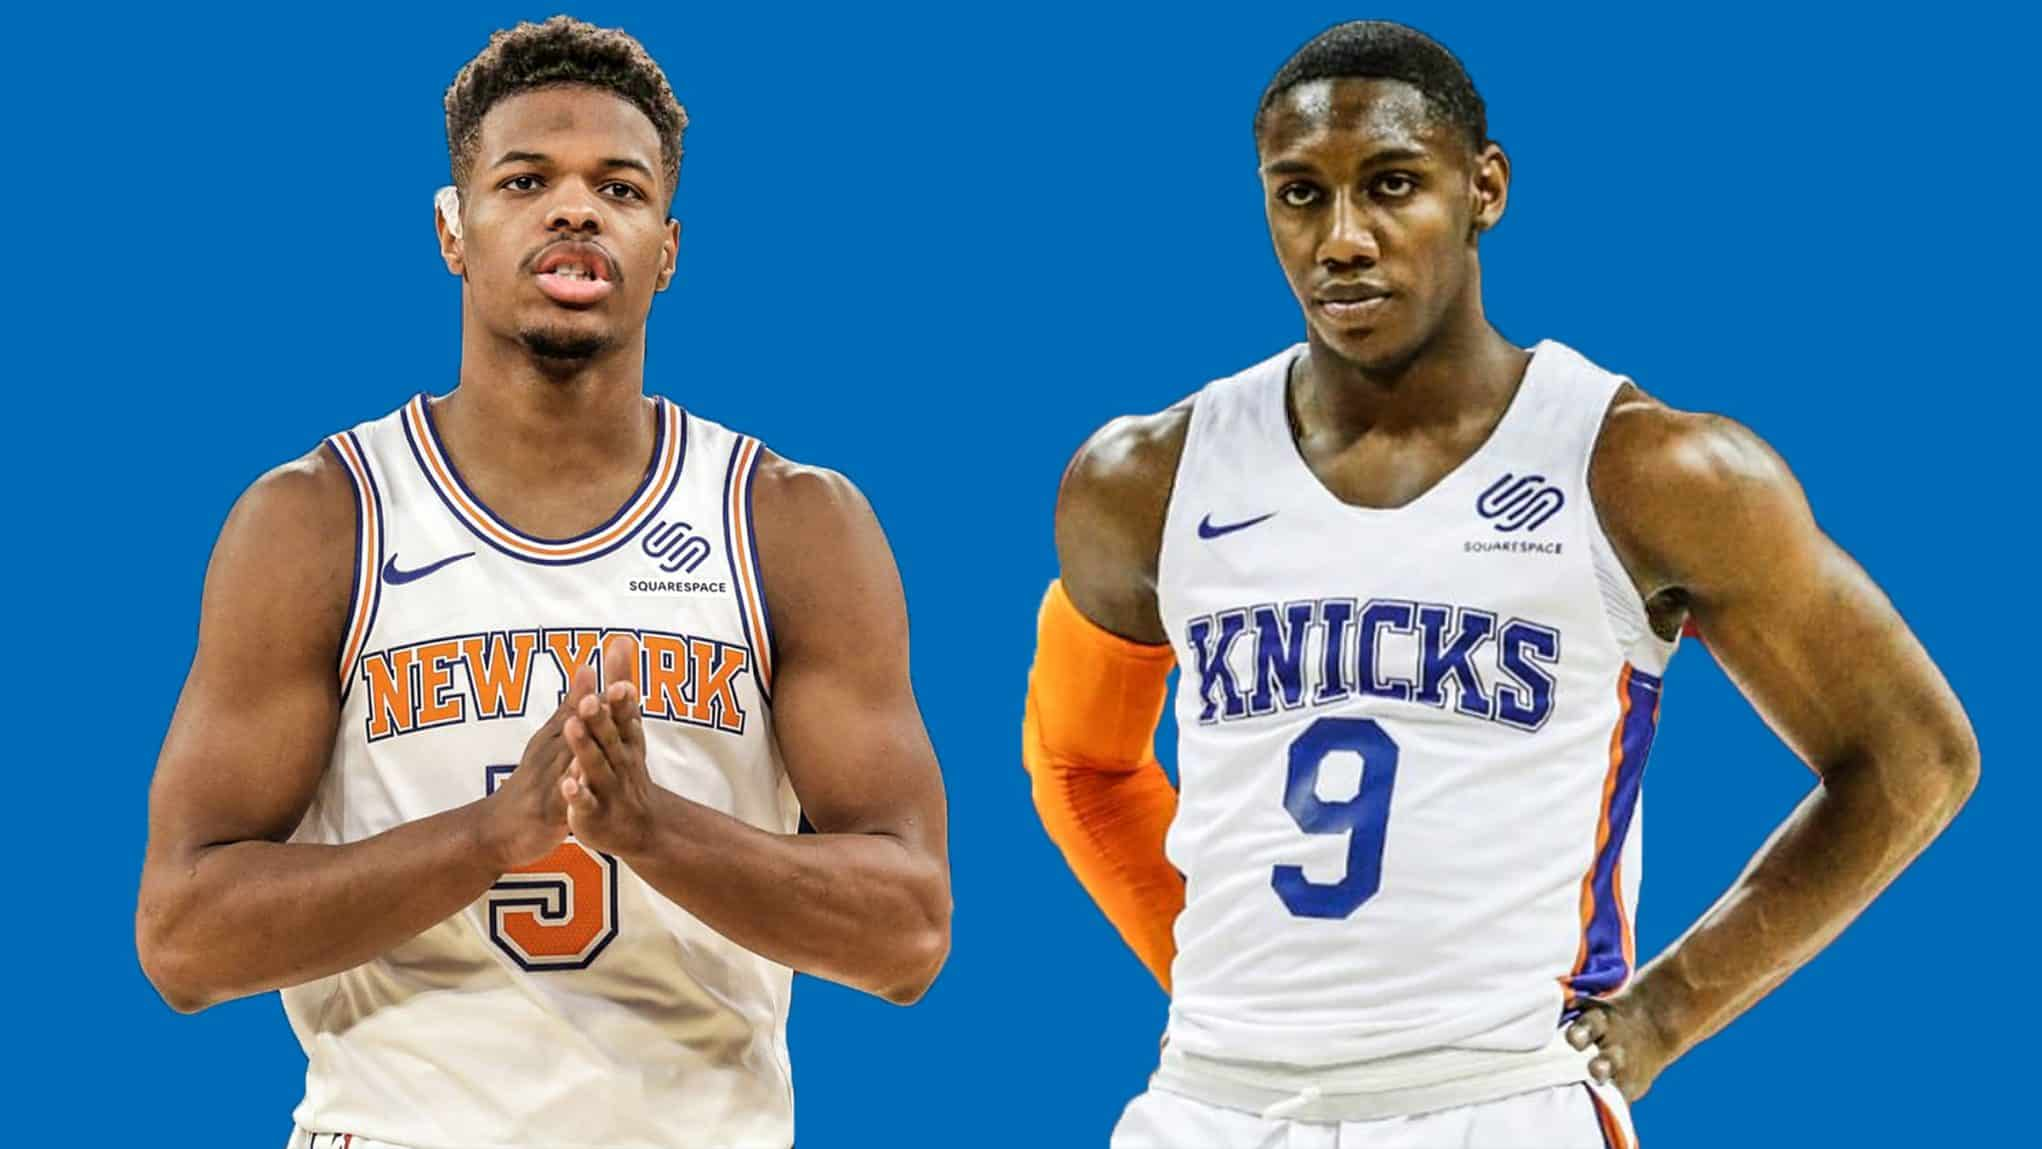 brand new 34426 a5b1a New York Knicks: Predicting the 2019-20 starting lineup